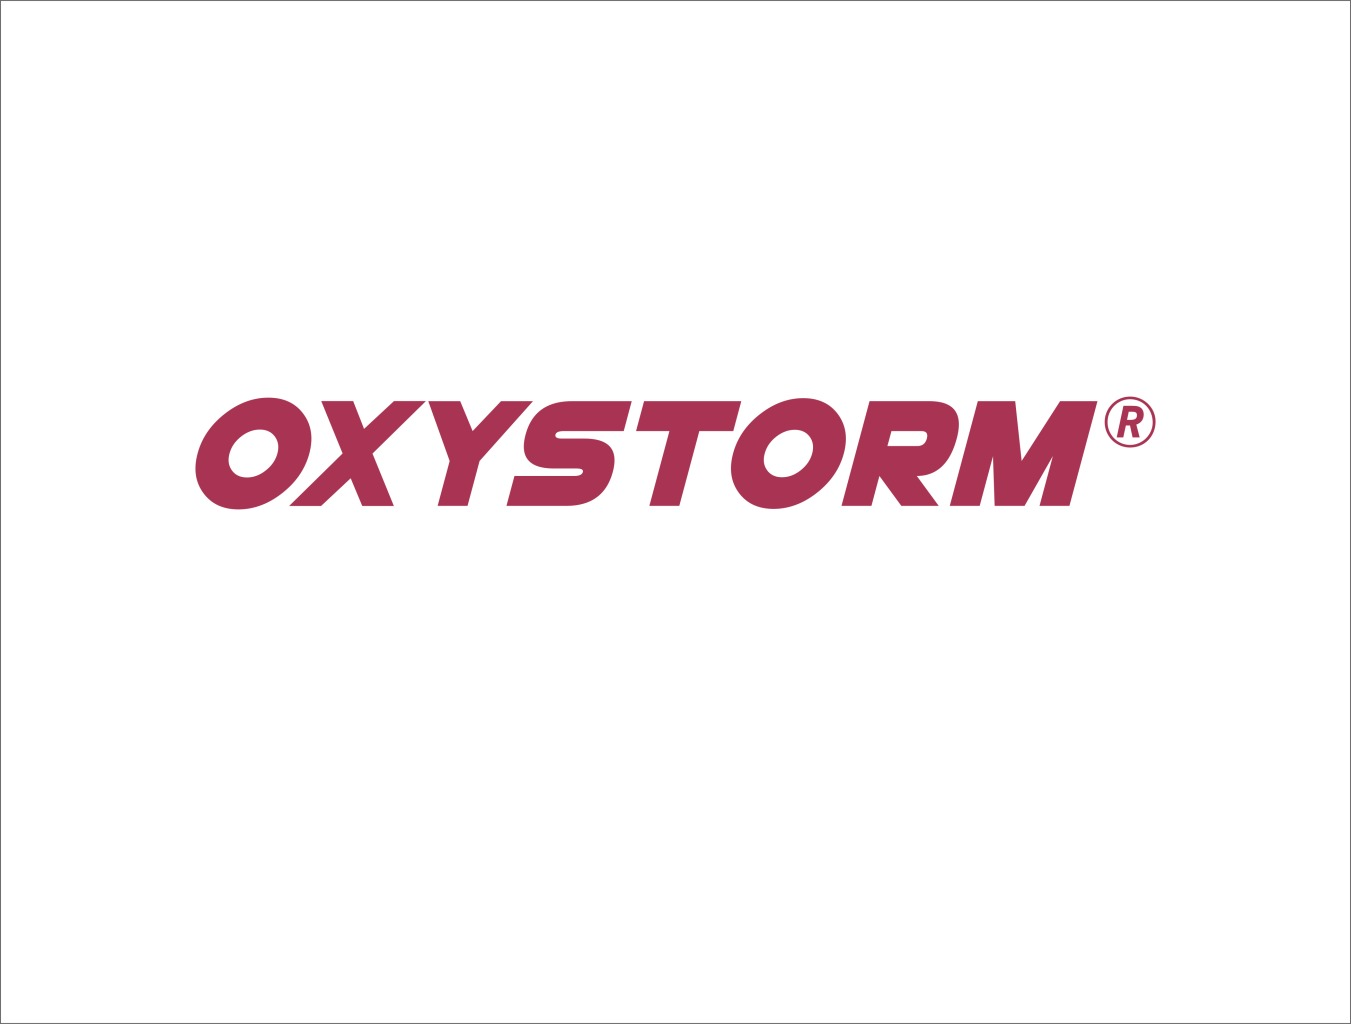 Oxystorm®   Arjuna Natural Extracts Ltd    Ingredients Network